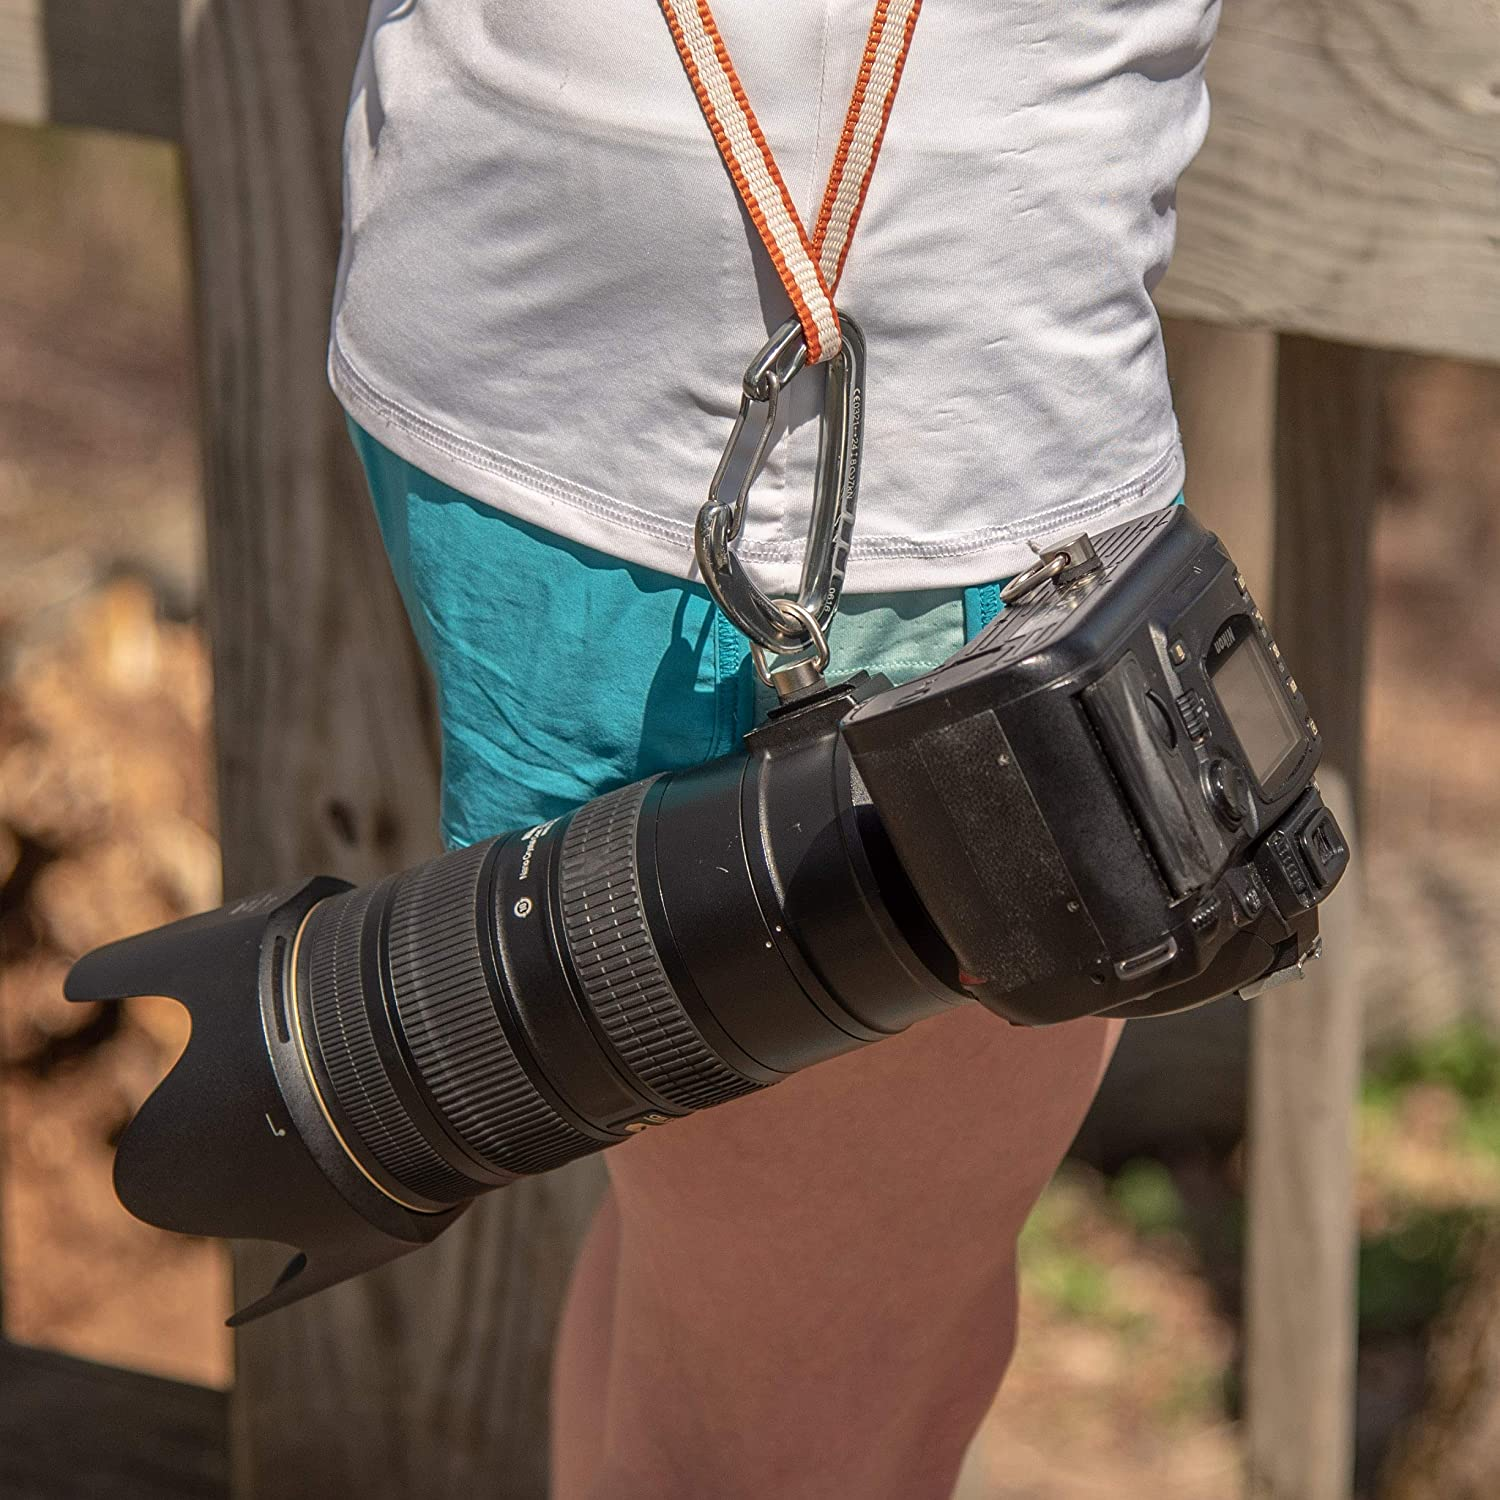 Danger Buddies Camera Carabiner Clip Easily Attach a Carabiner to Your Camera!